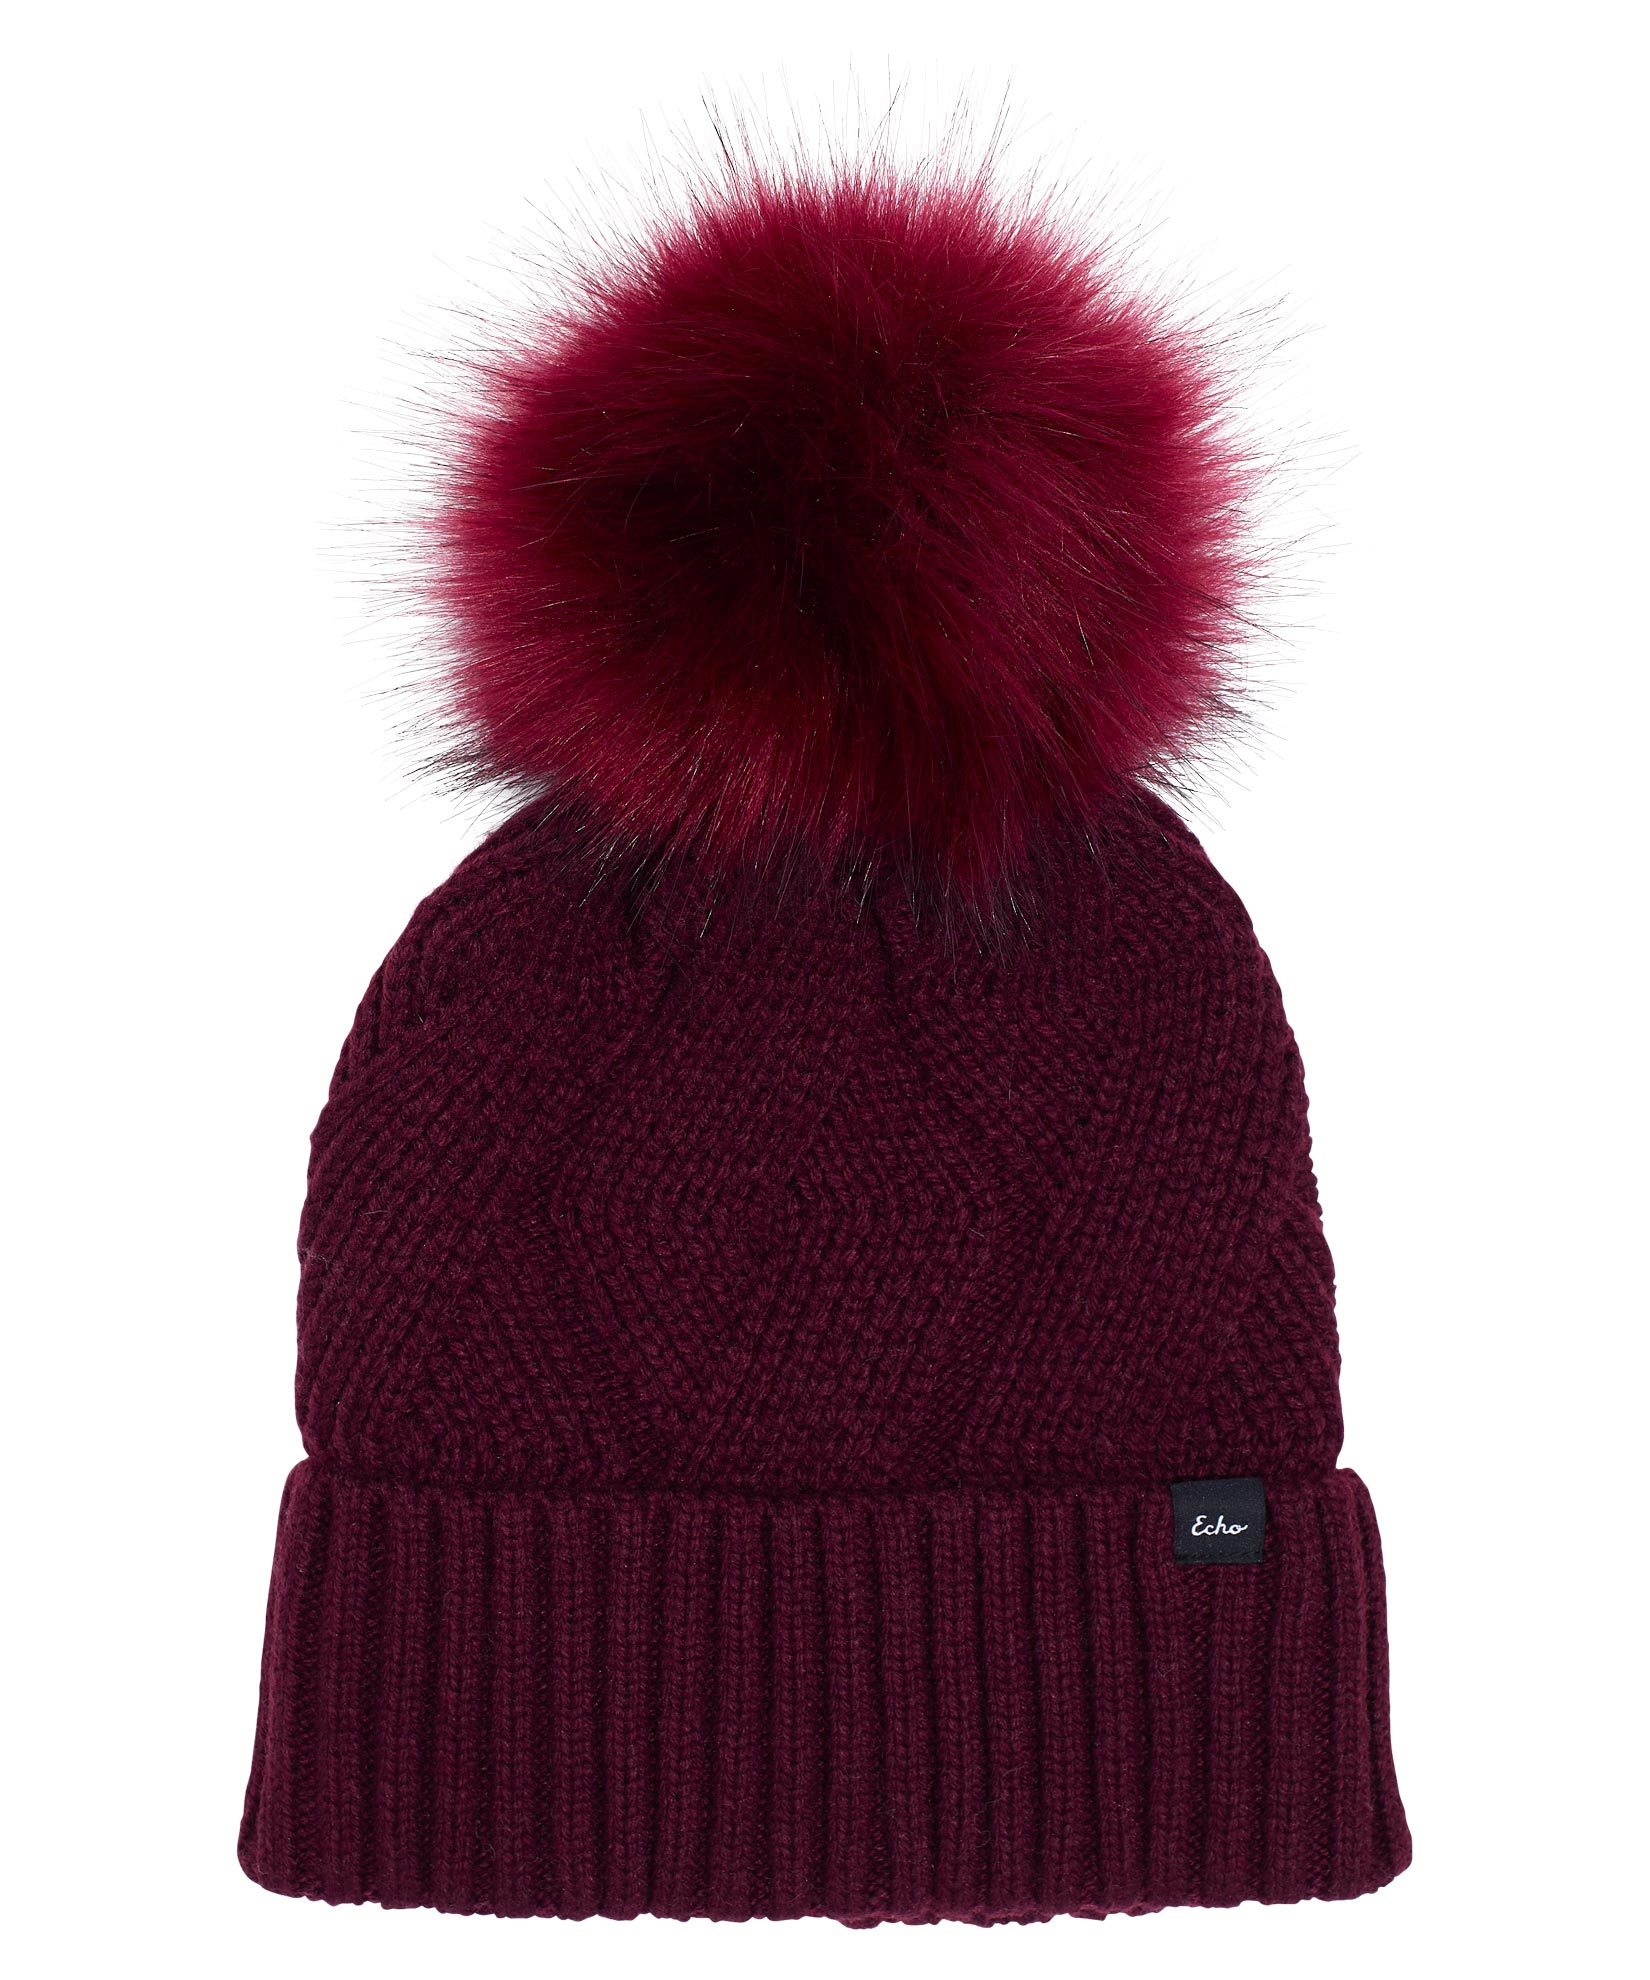 Garnet - Recycled Cable Hat